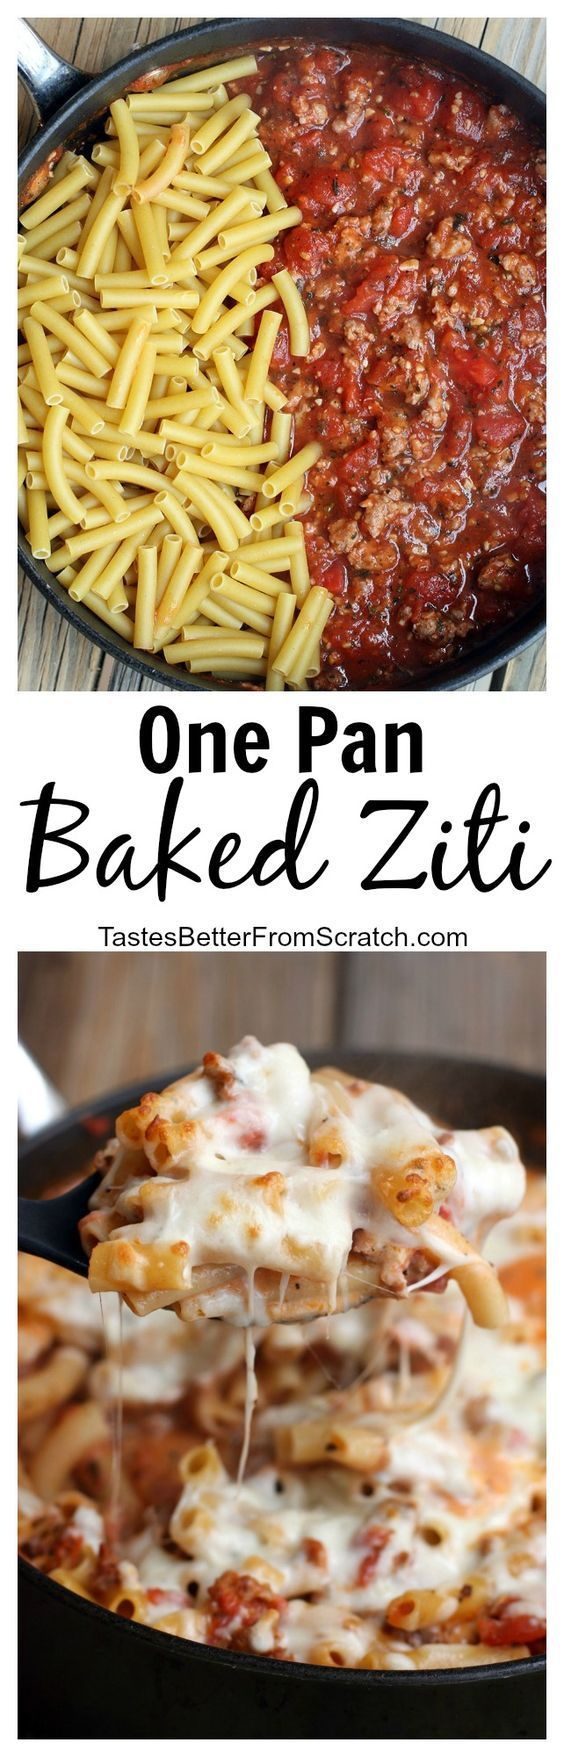 One Pan Baked Ziti Recipe | Tastes Better From Scratch - The Best Easy One Pot Pasta Family Dinner Recipes